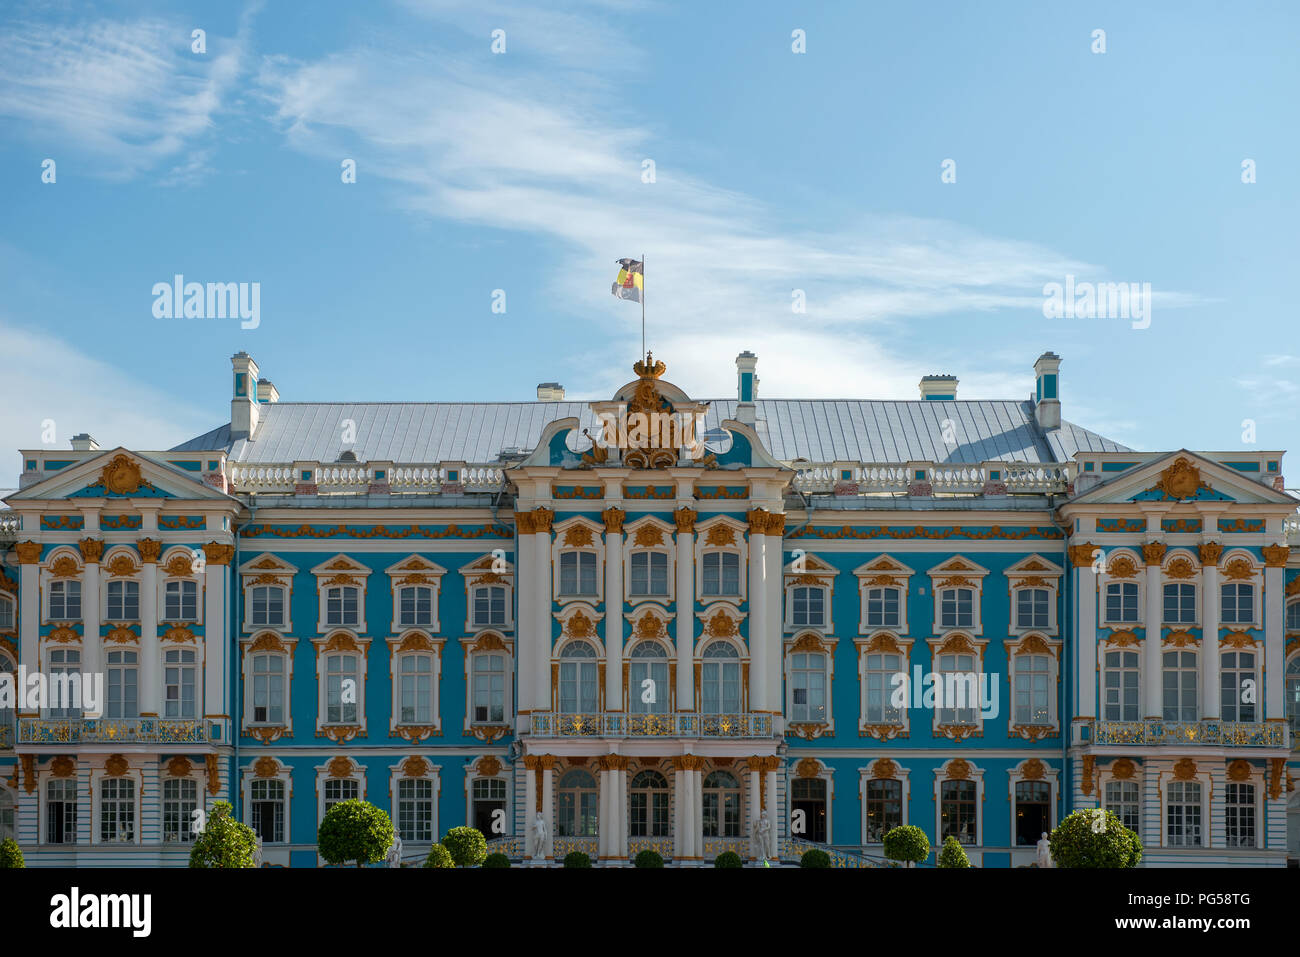 ST.PETERSBURG, RUSSIA - AUGUST 19, 2017: Catherine Palace - the summer residence of the Russian tsars. Tsarskoye Selo, Russia - Stock Image